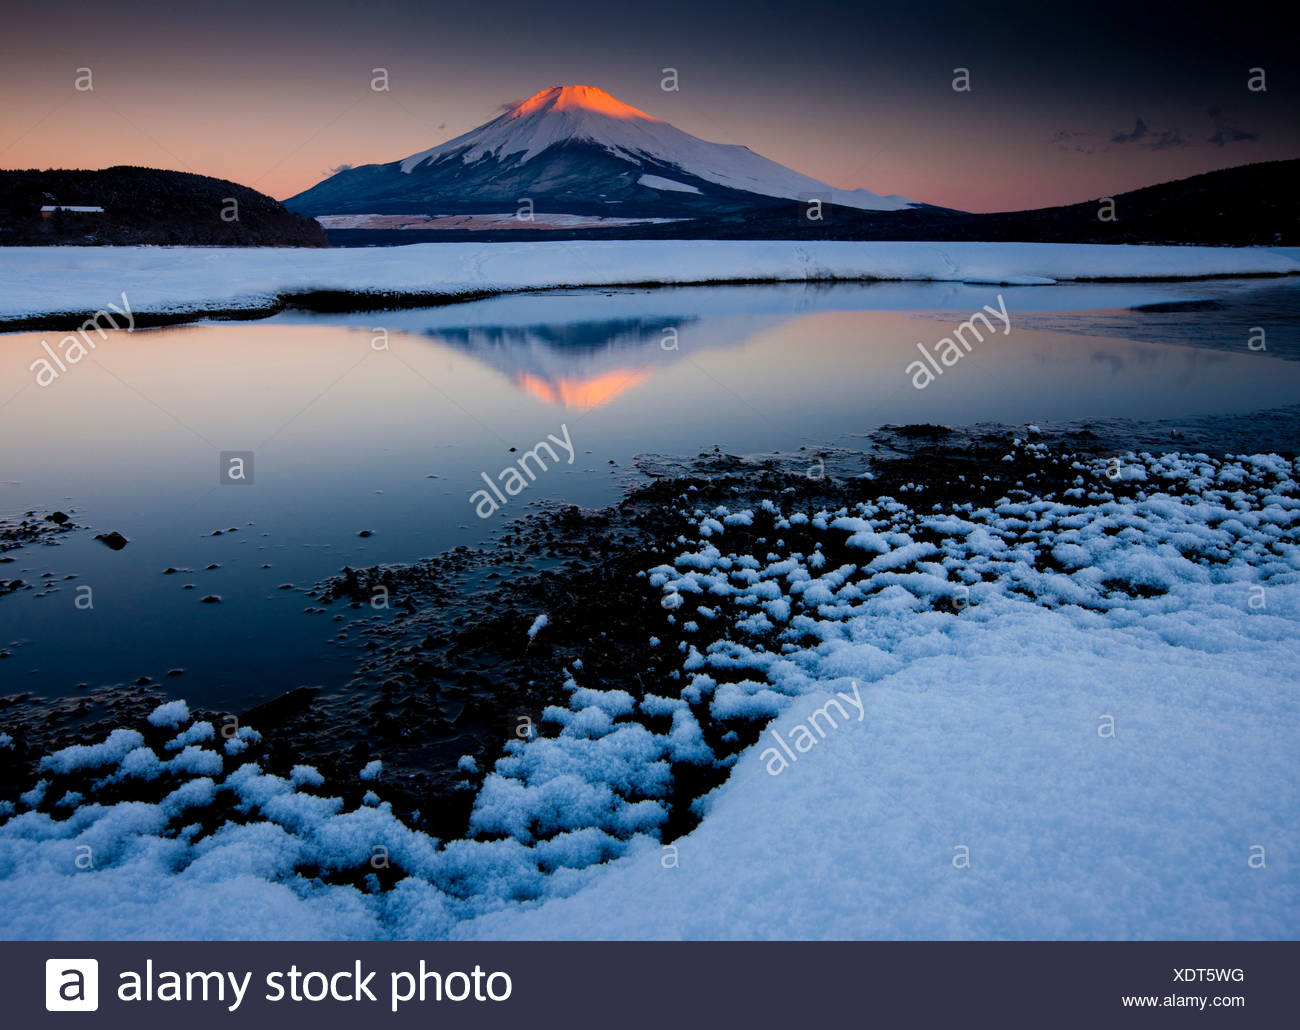 Mt. Fuji, Japan - Stock Image